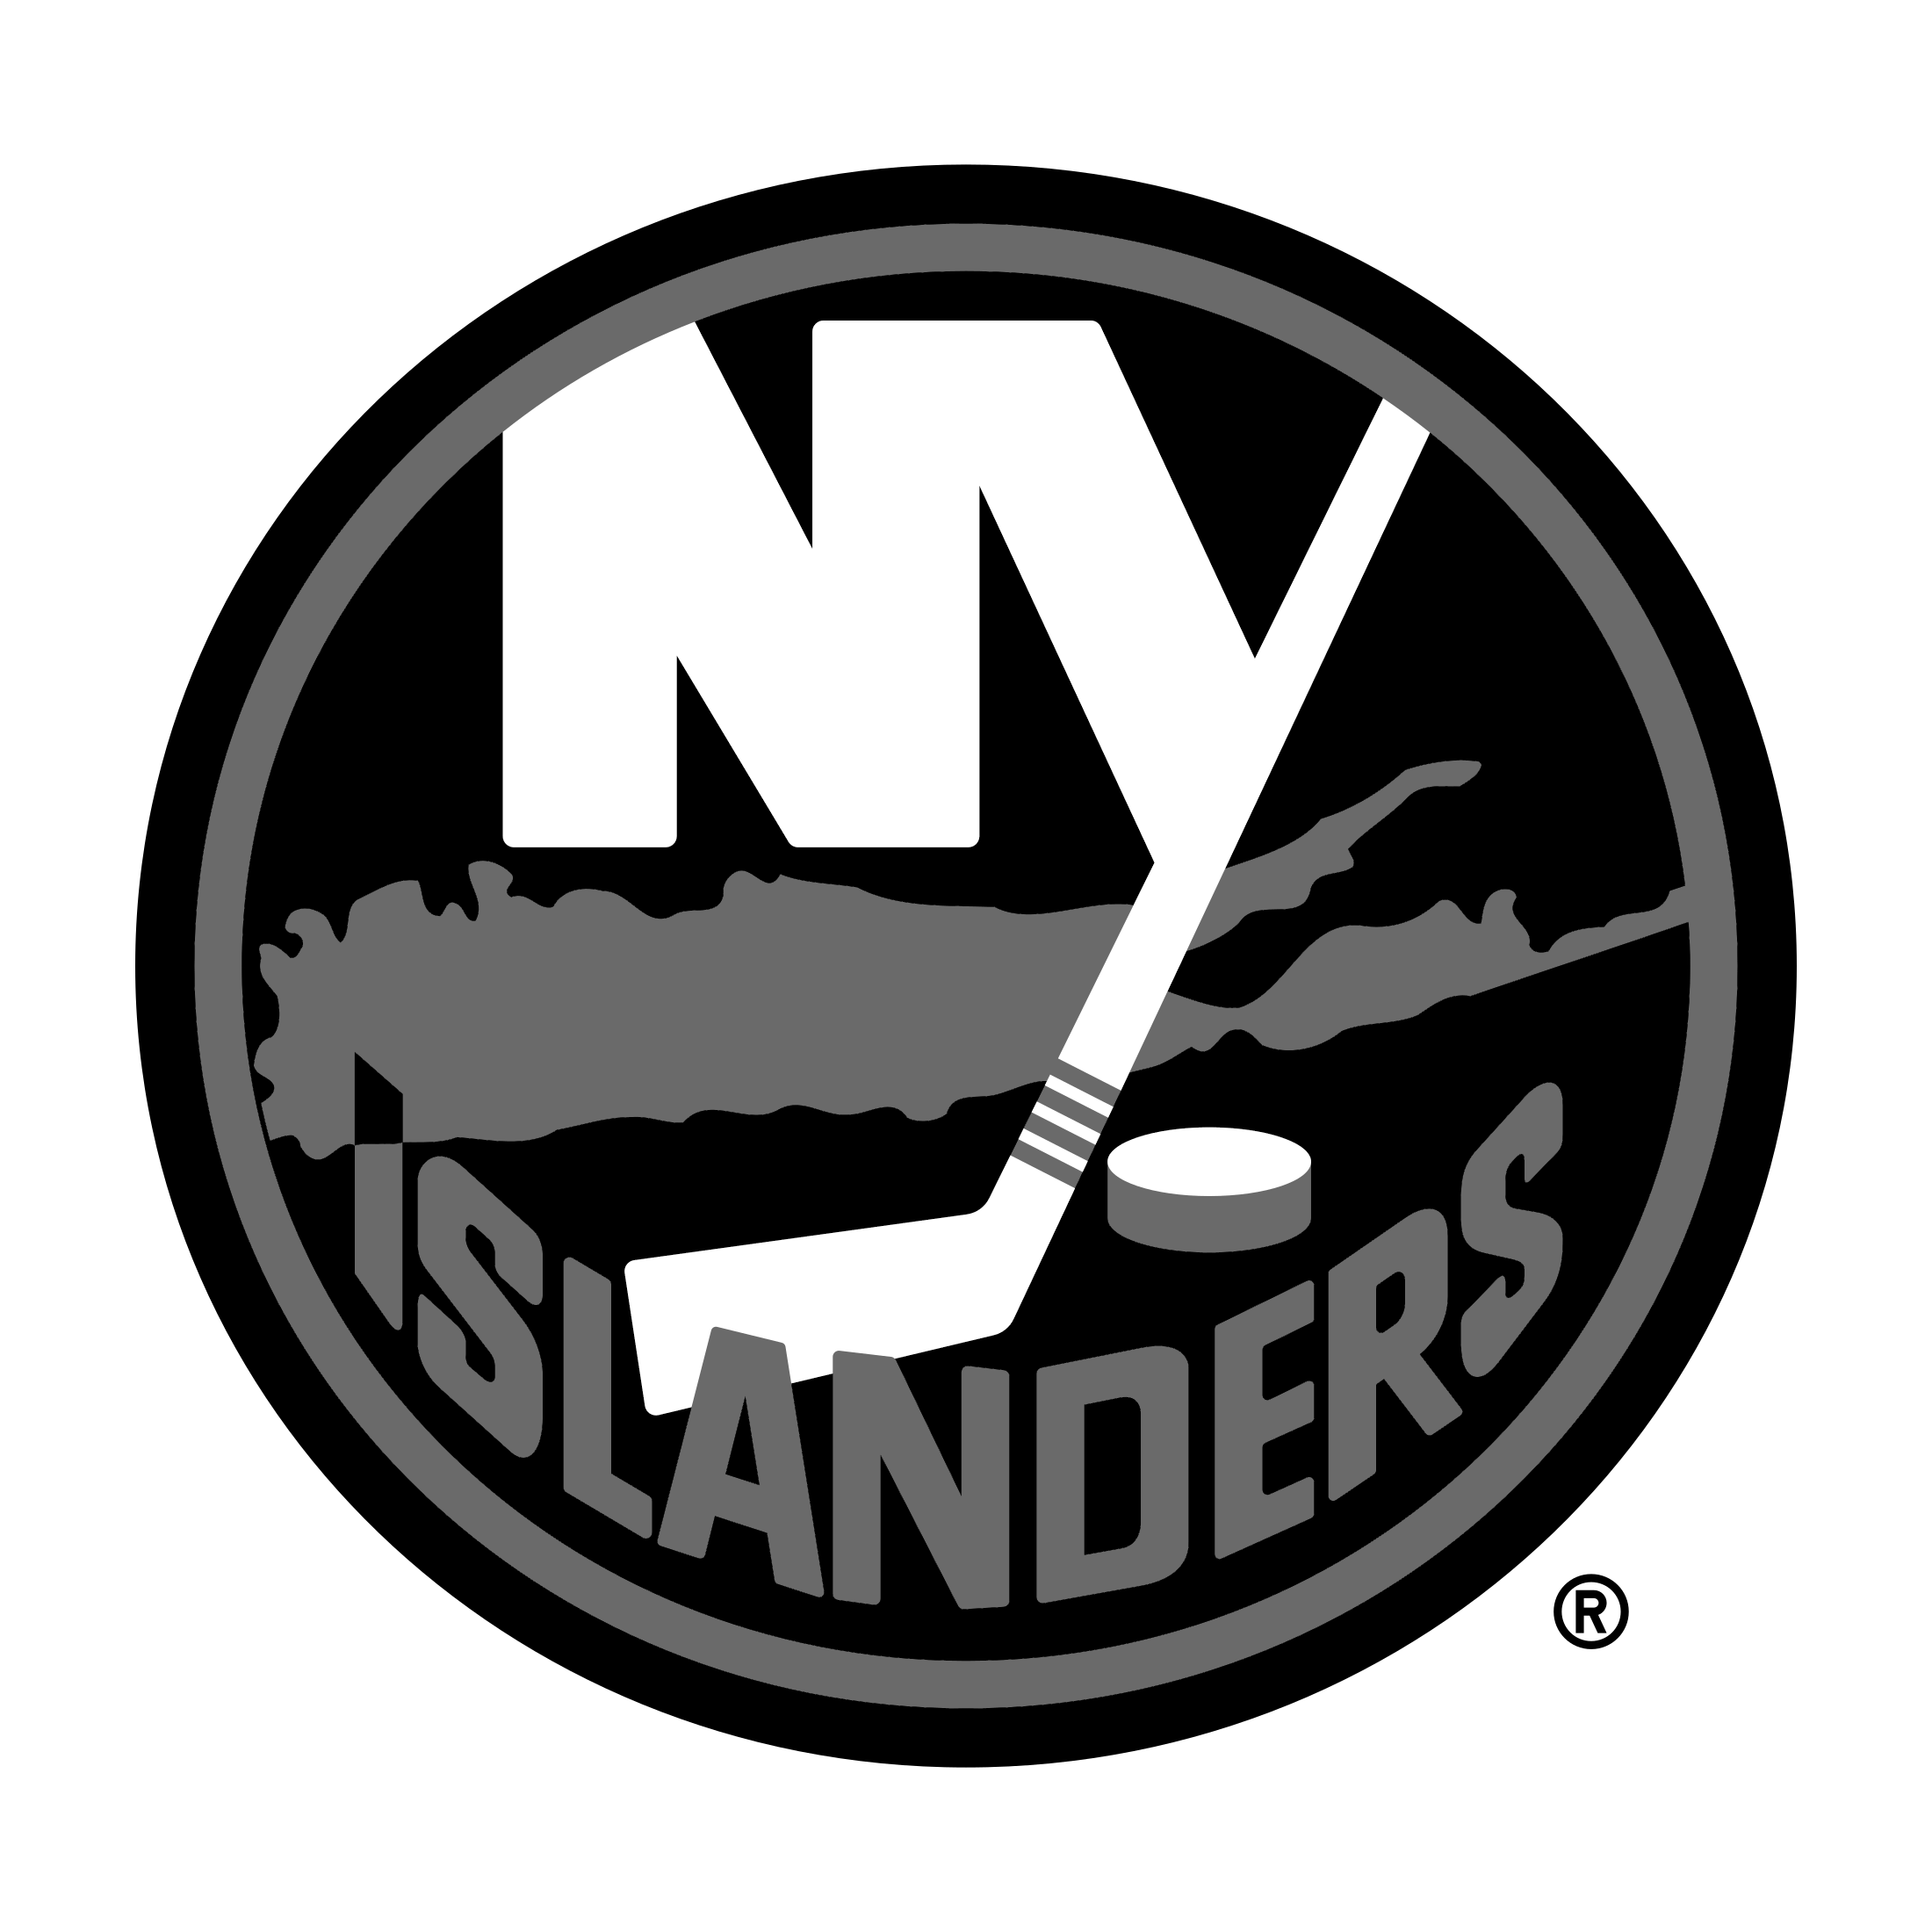 New York Islanders Logo PNG Transparent & SVG Vector.